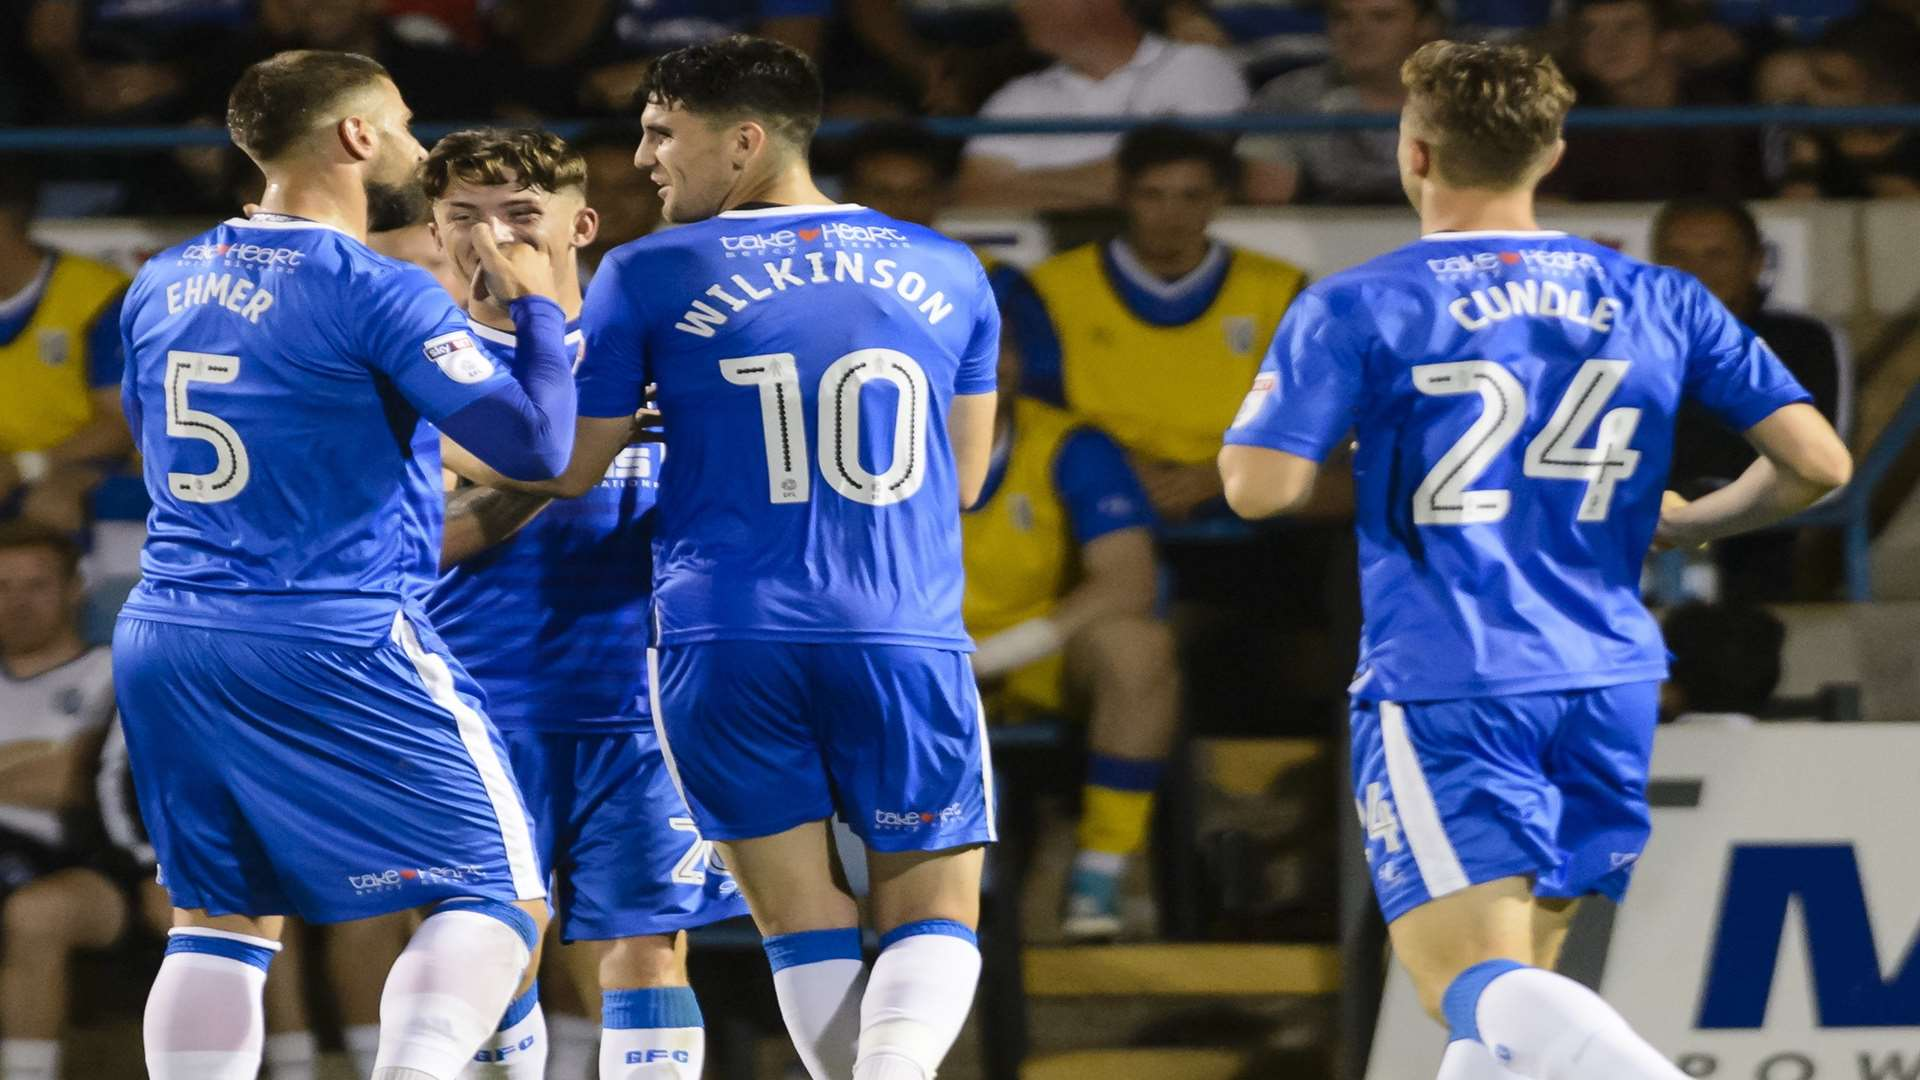 Gills celebrate their second goal against Southend. Picture: Andy Payton